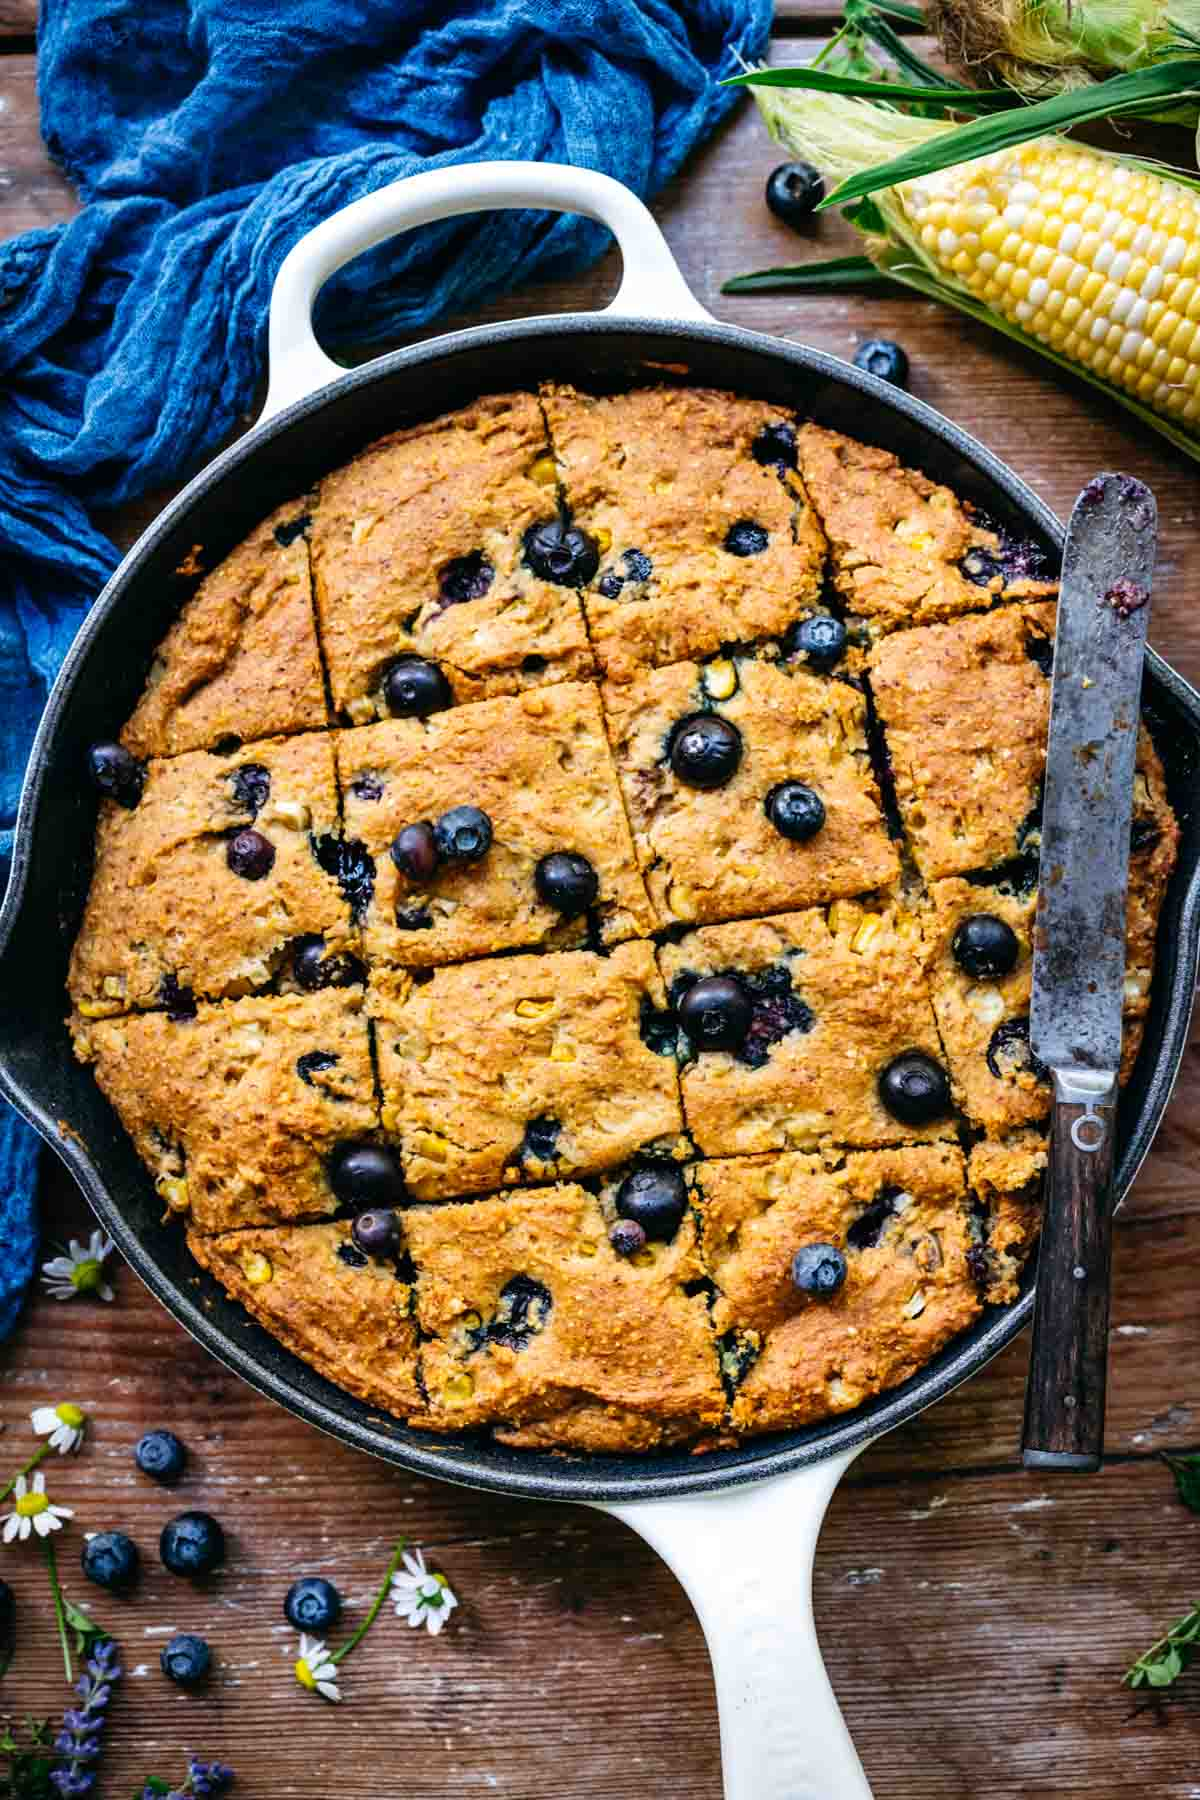 Overhead view of blueberry cornbread in a skillet.